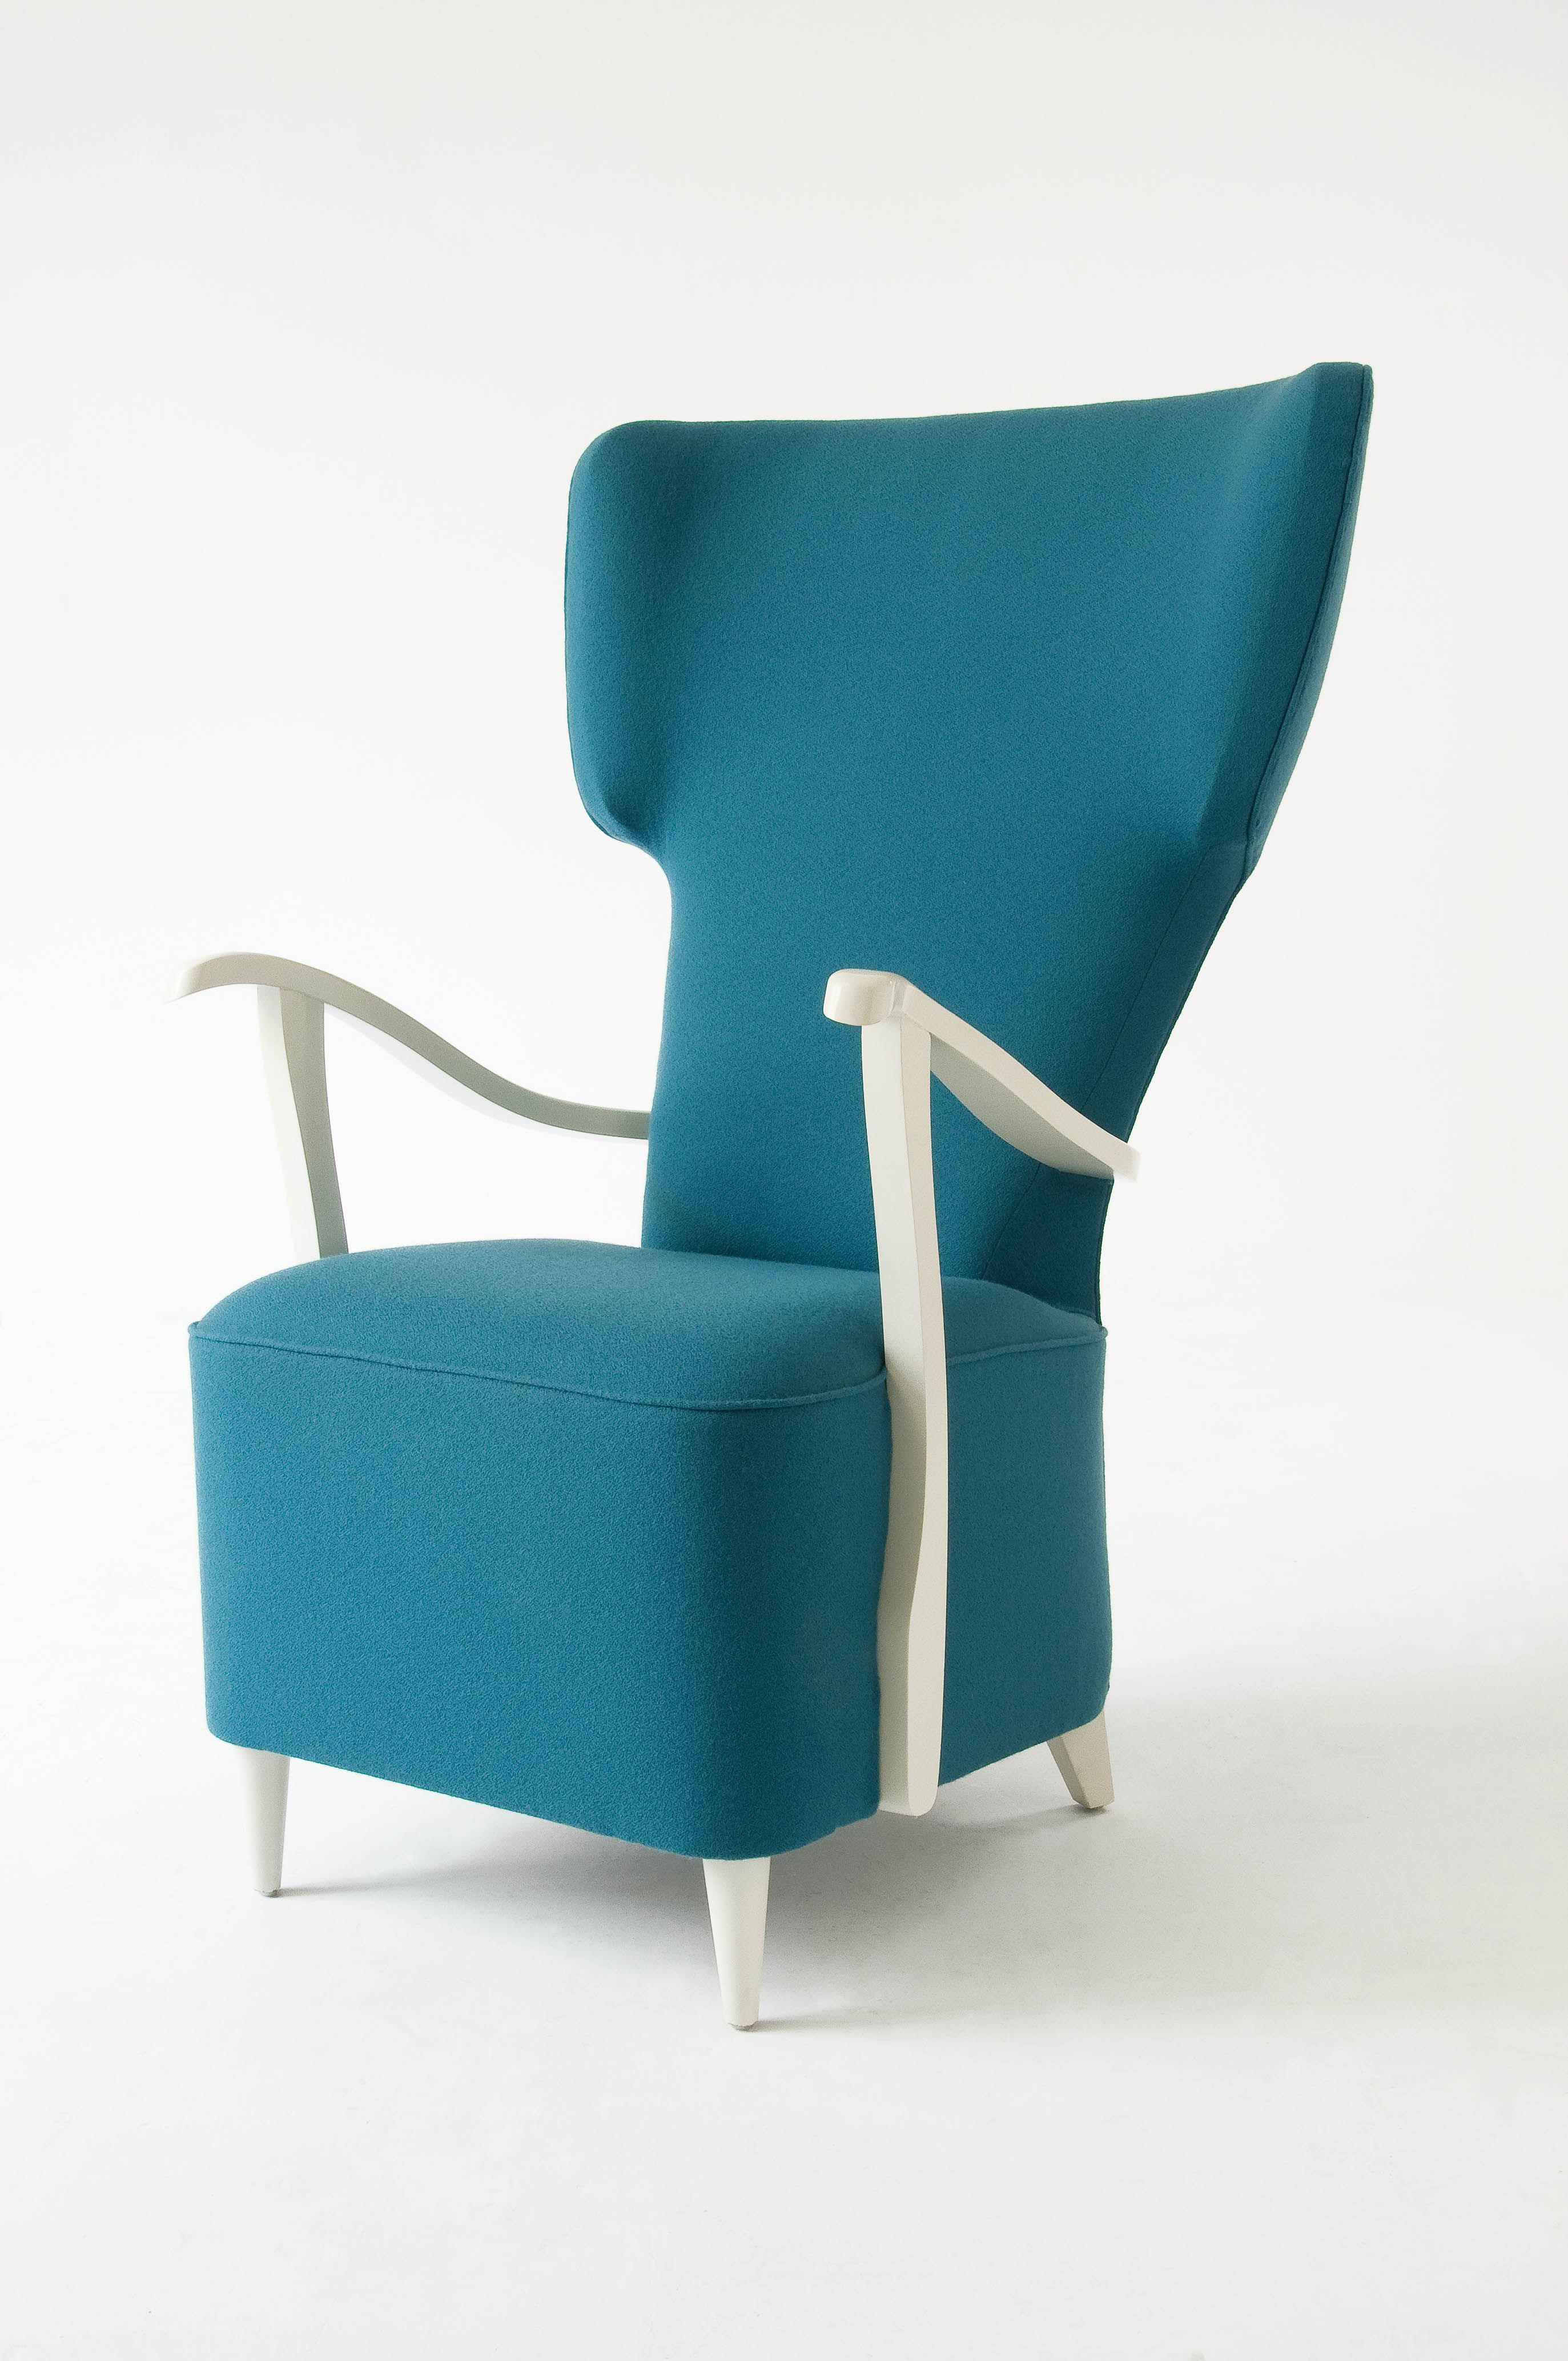 Rita Armchair by Jean-Louis Deniot for Collection Pierre